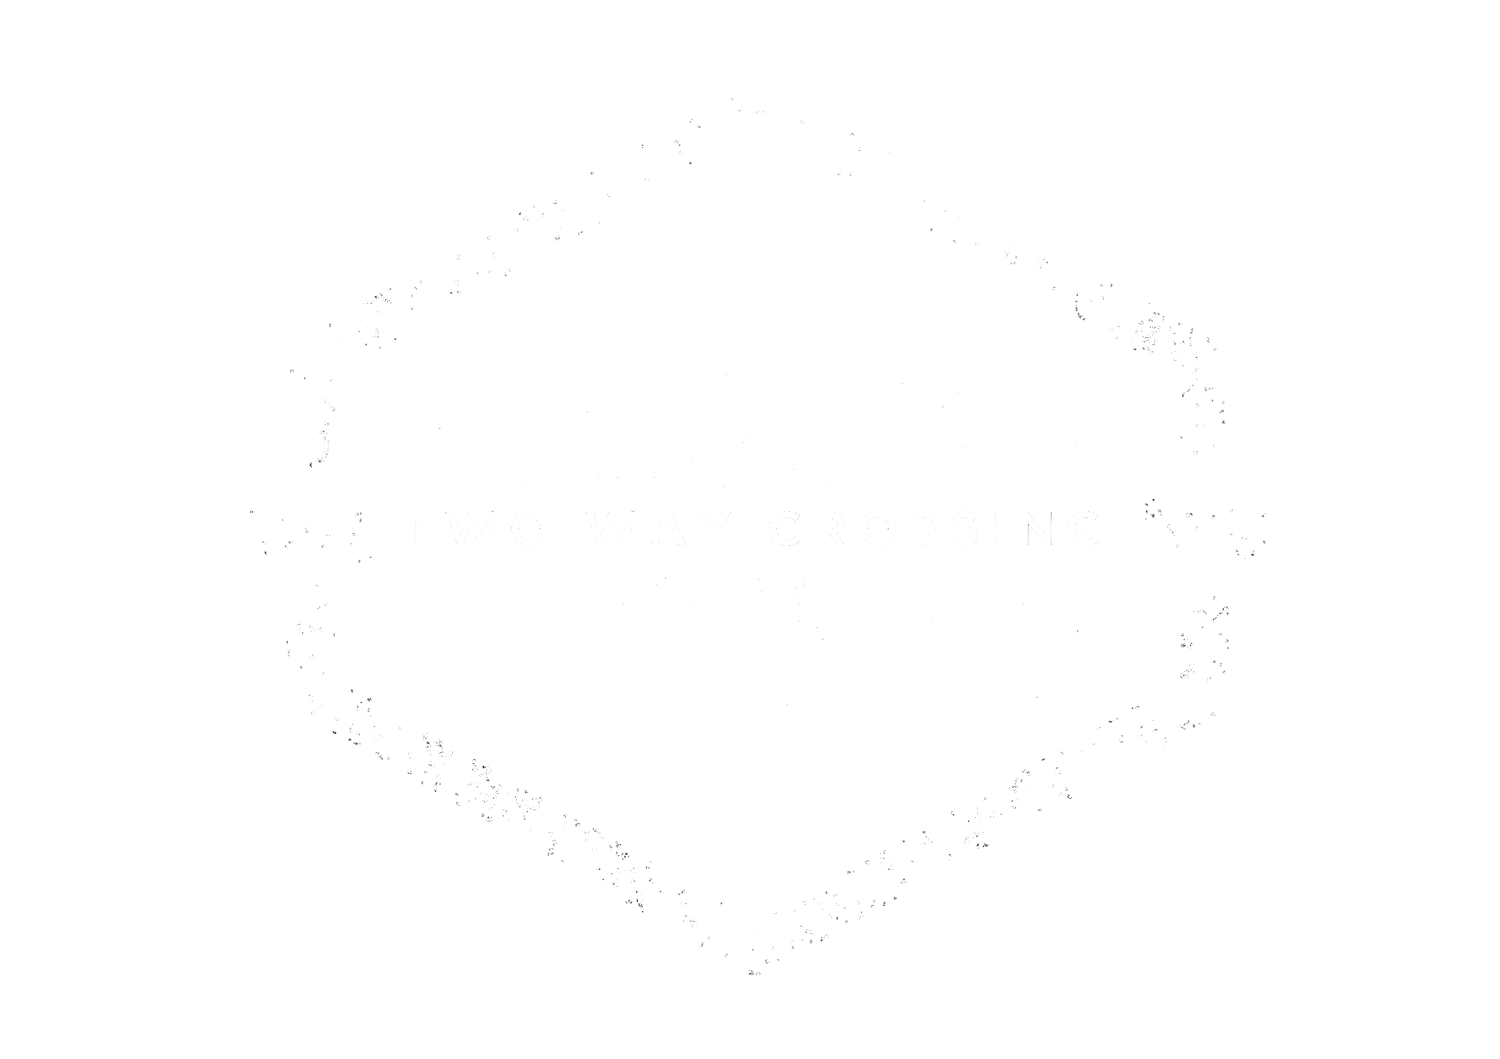 Two Way Crossing